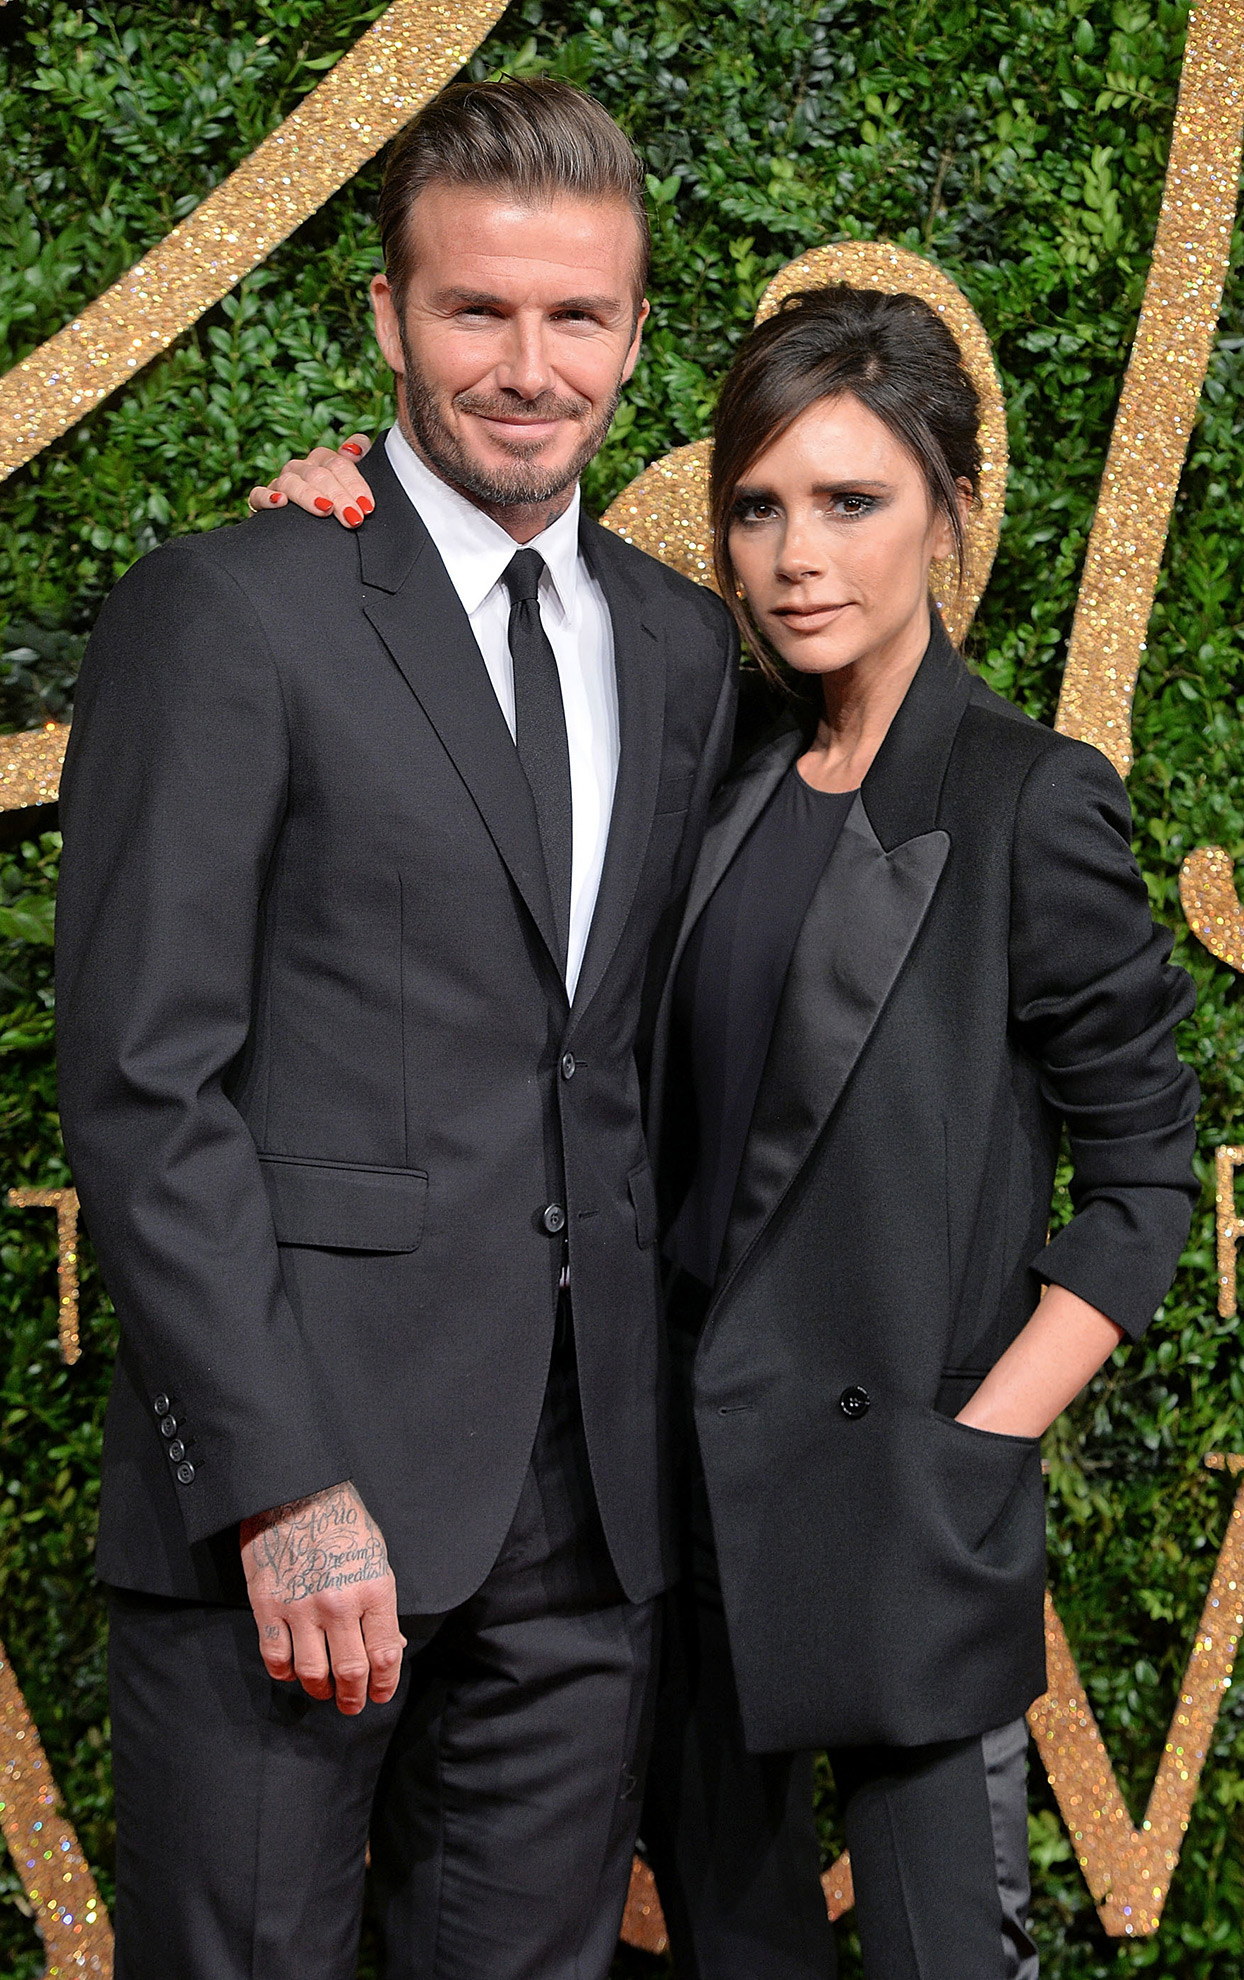 David and Victoria Beckham couple in black